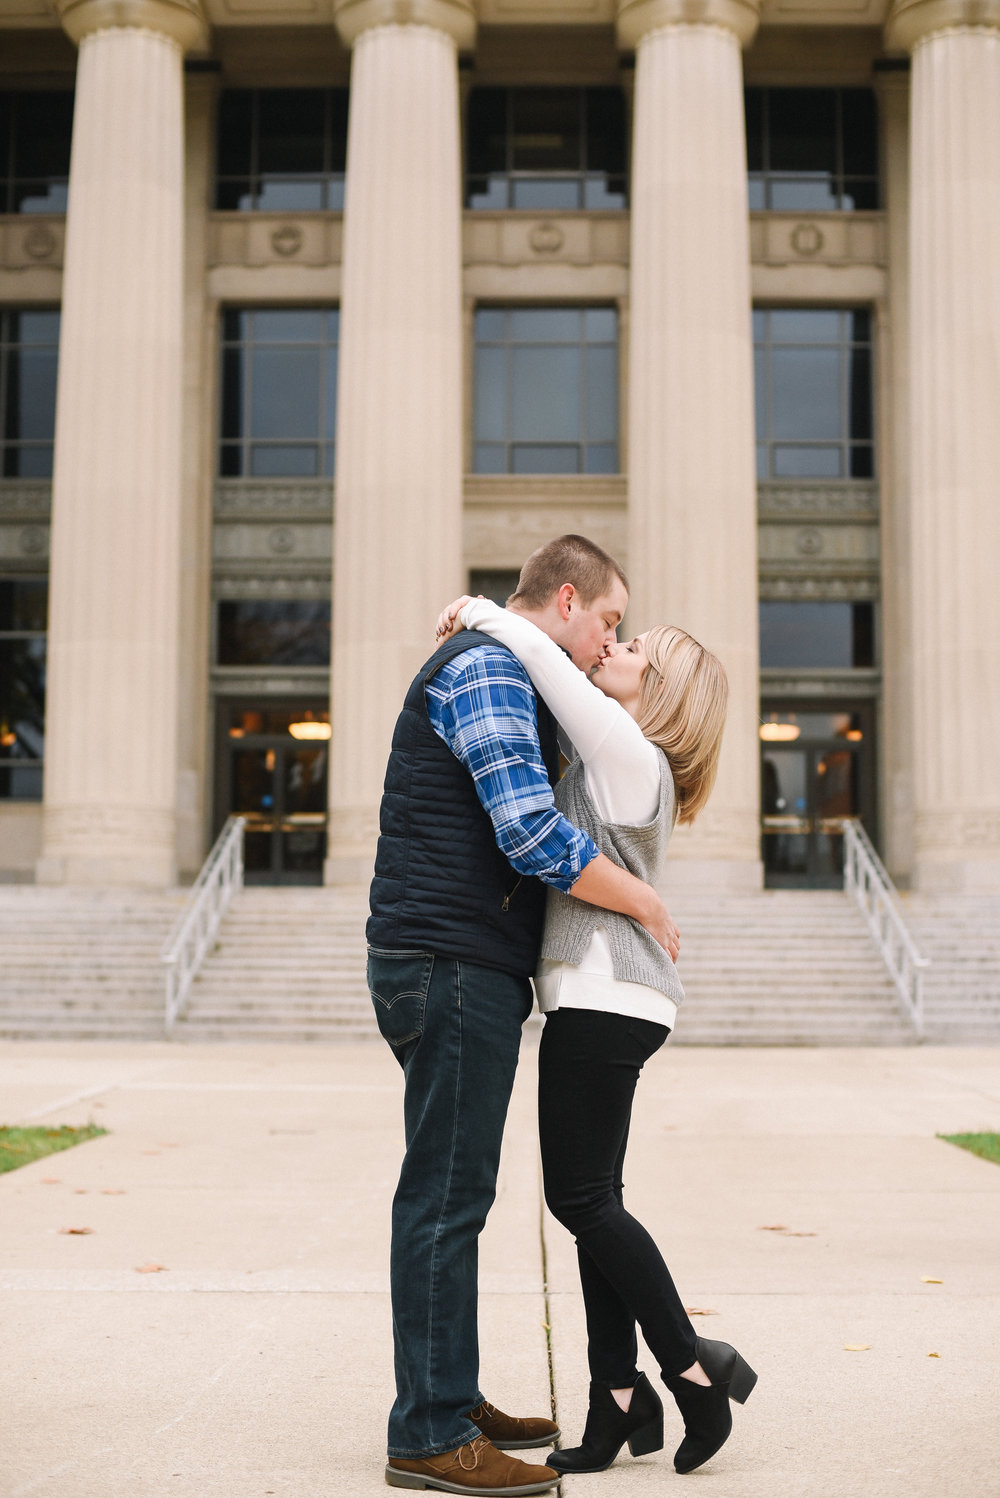 Law_Quad_Ann_Arbor_Engagement_Photos-19.jpg